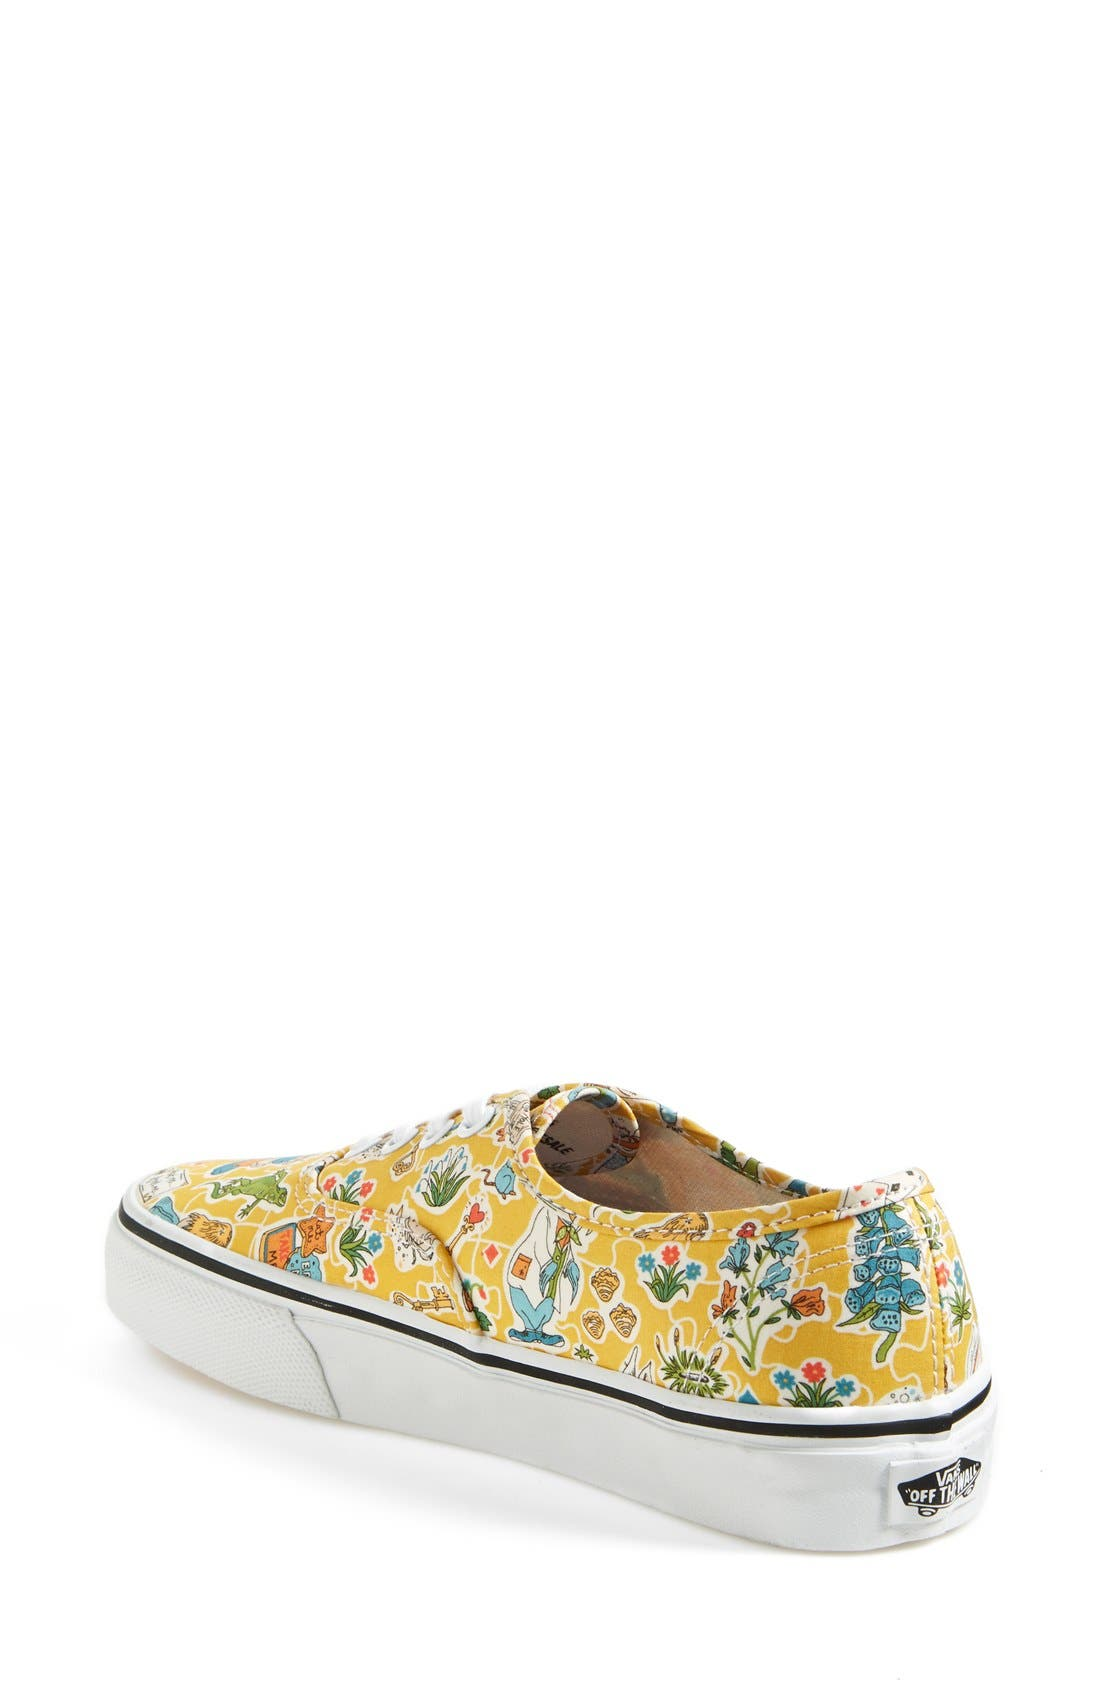 Alternate Image 2  - Vans 'Authentic - Liberty Era' Sneaker (Women)